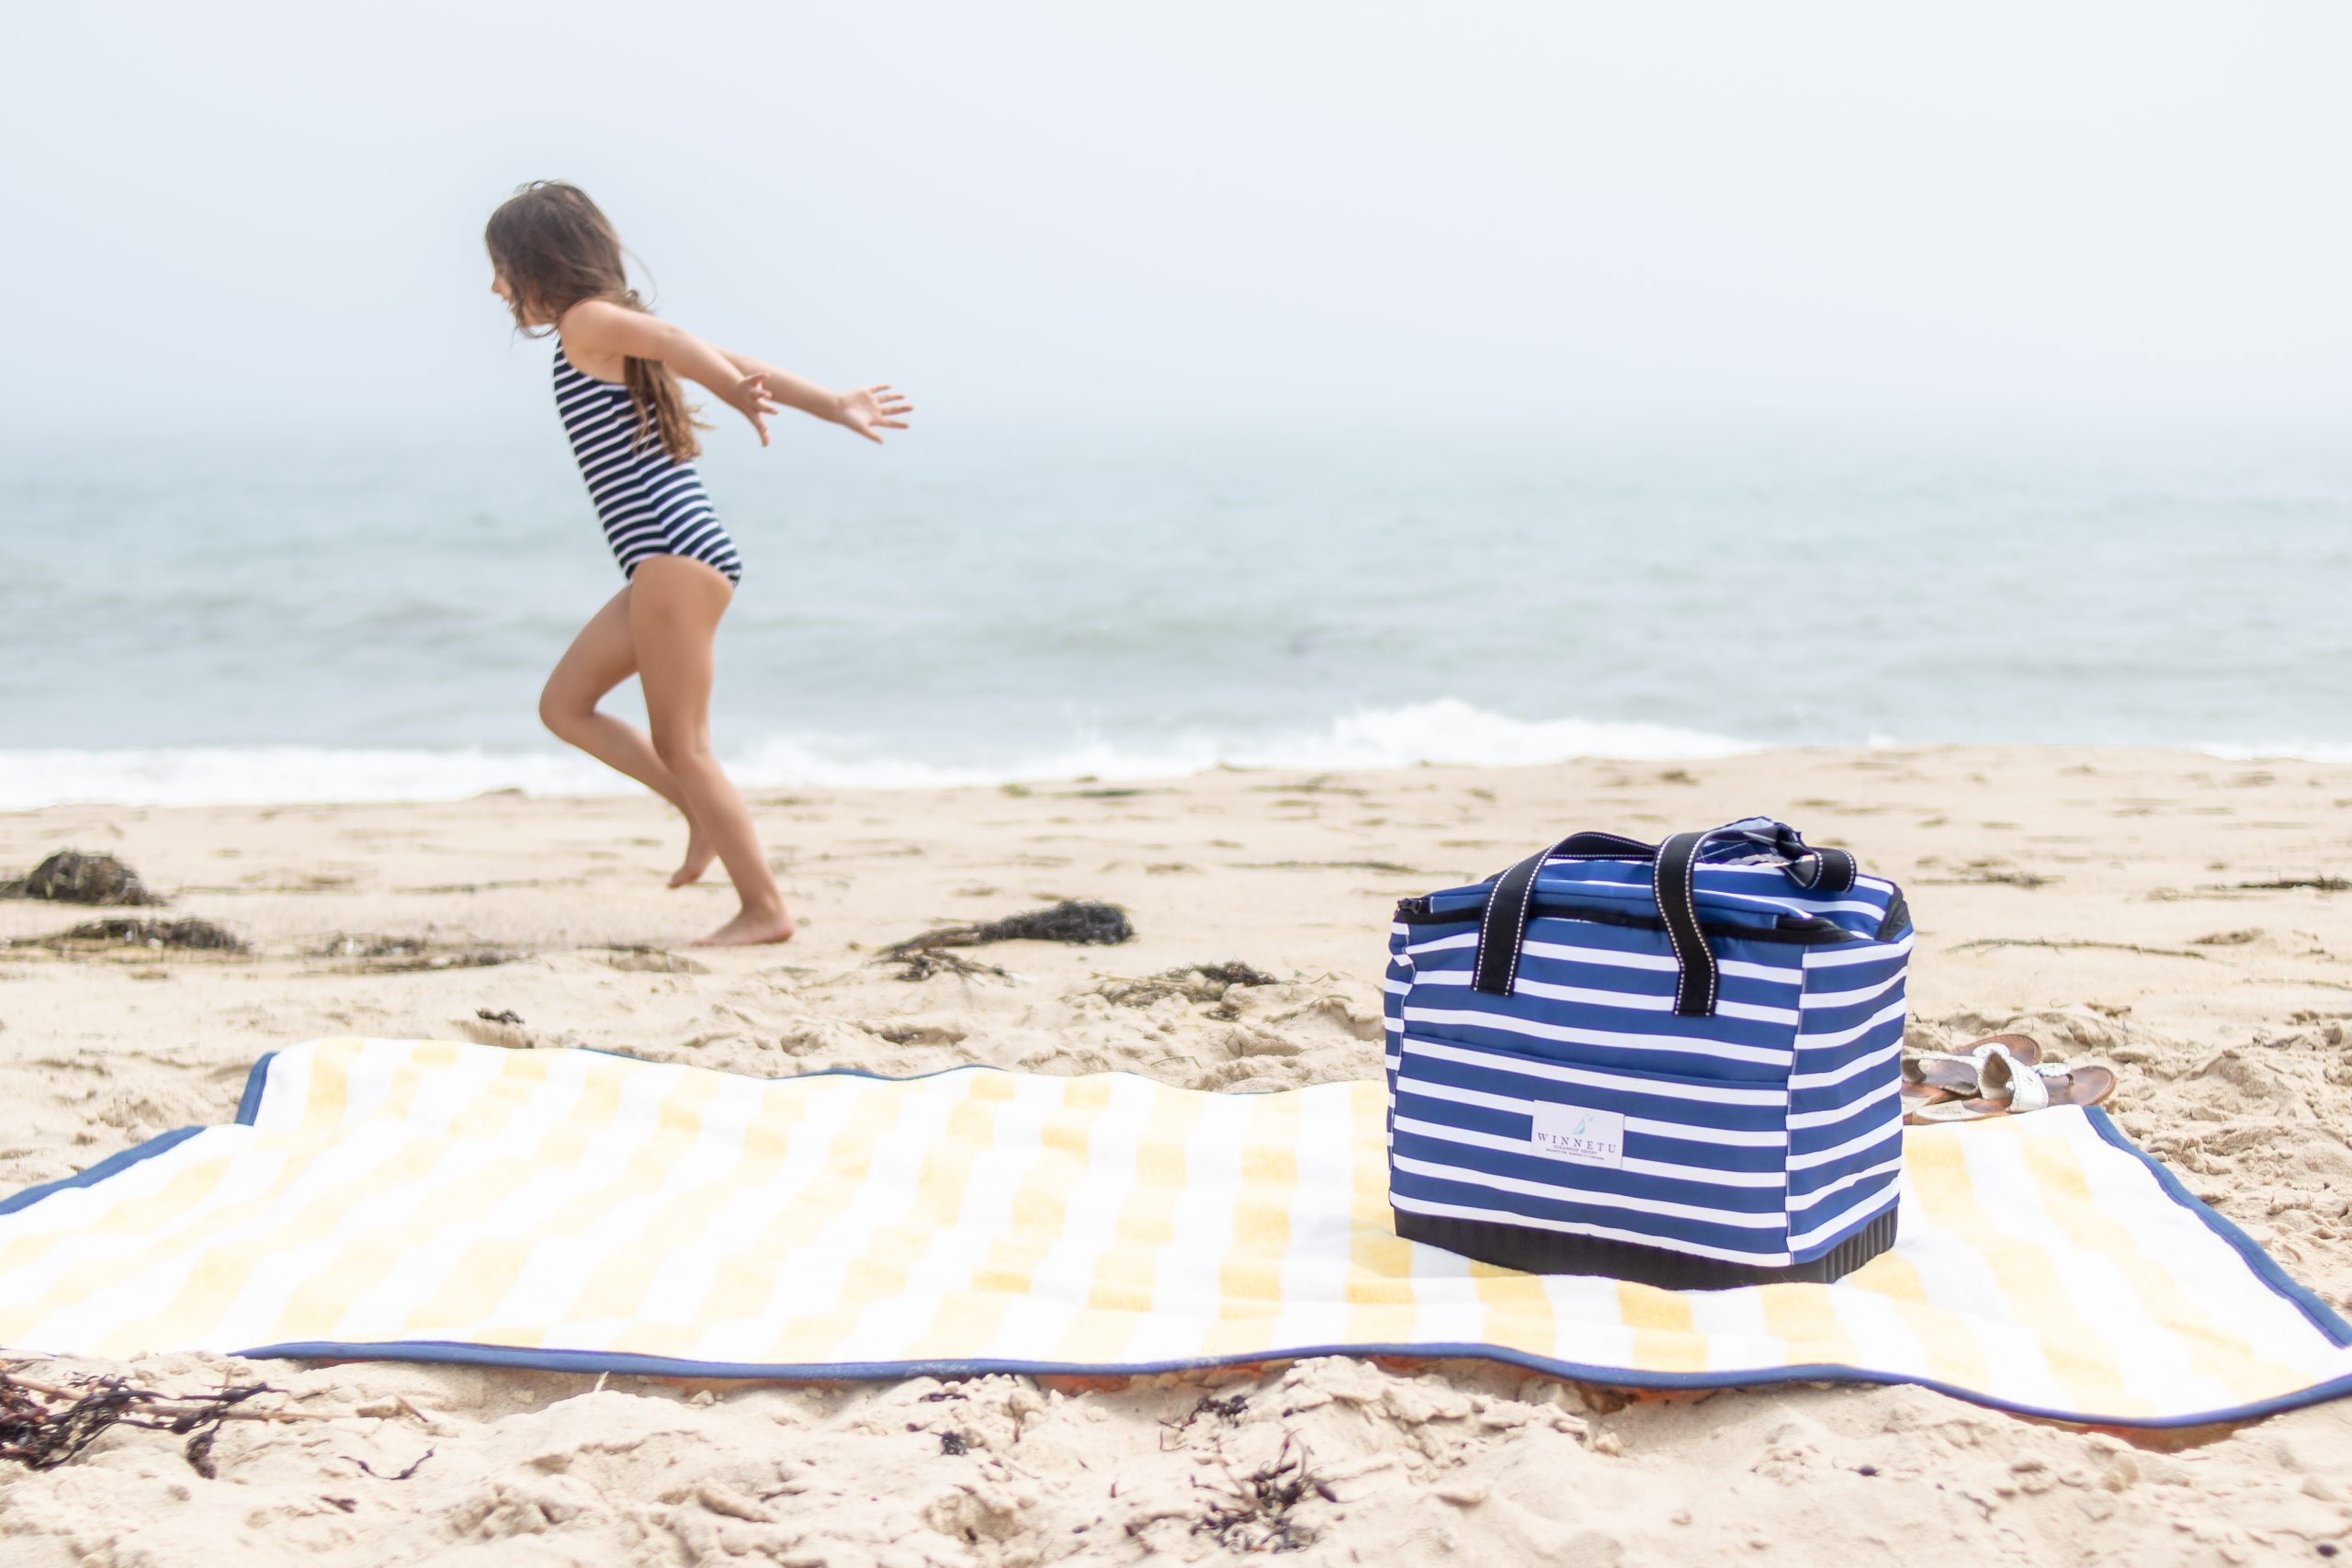 little girl running across beach in front of blanket with cooler winnetu